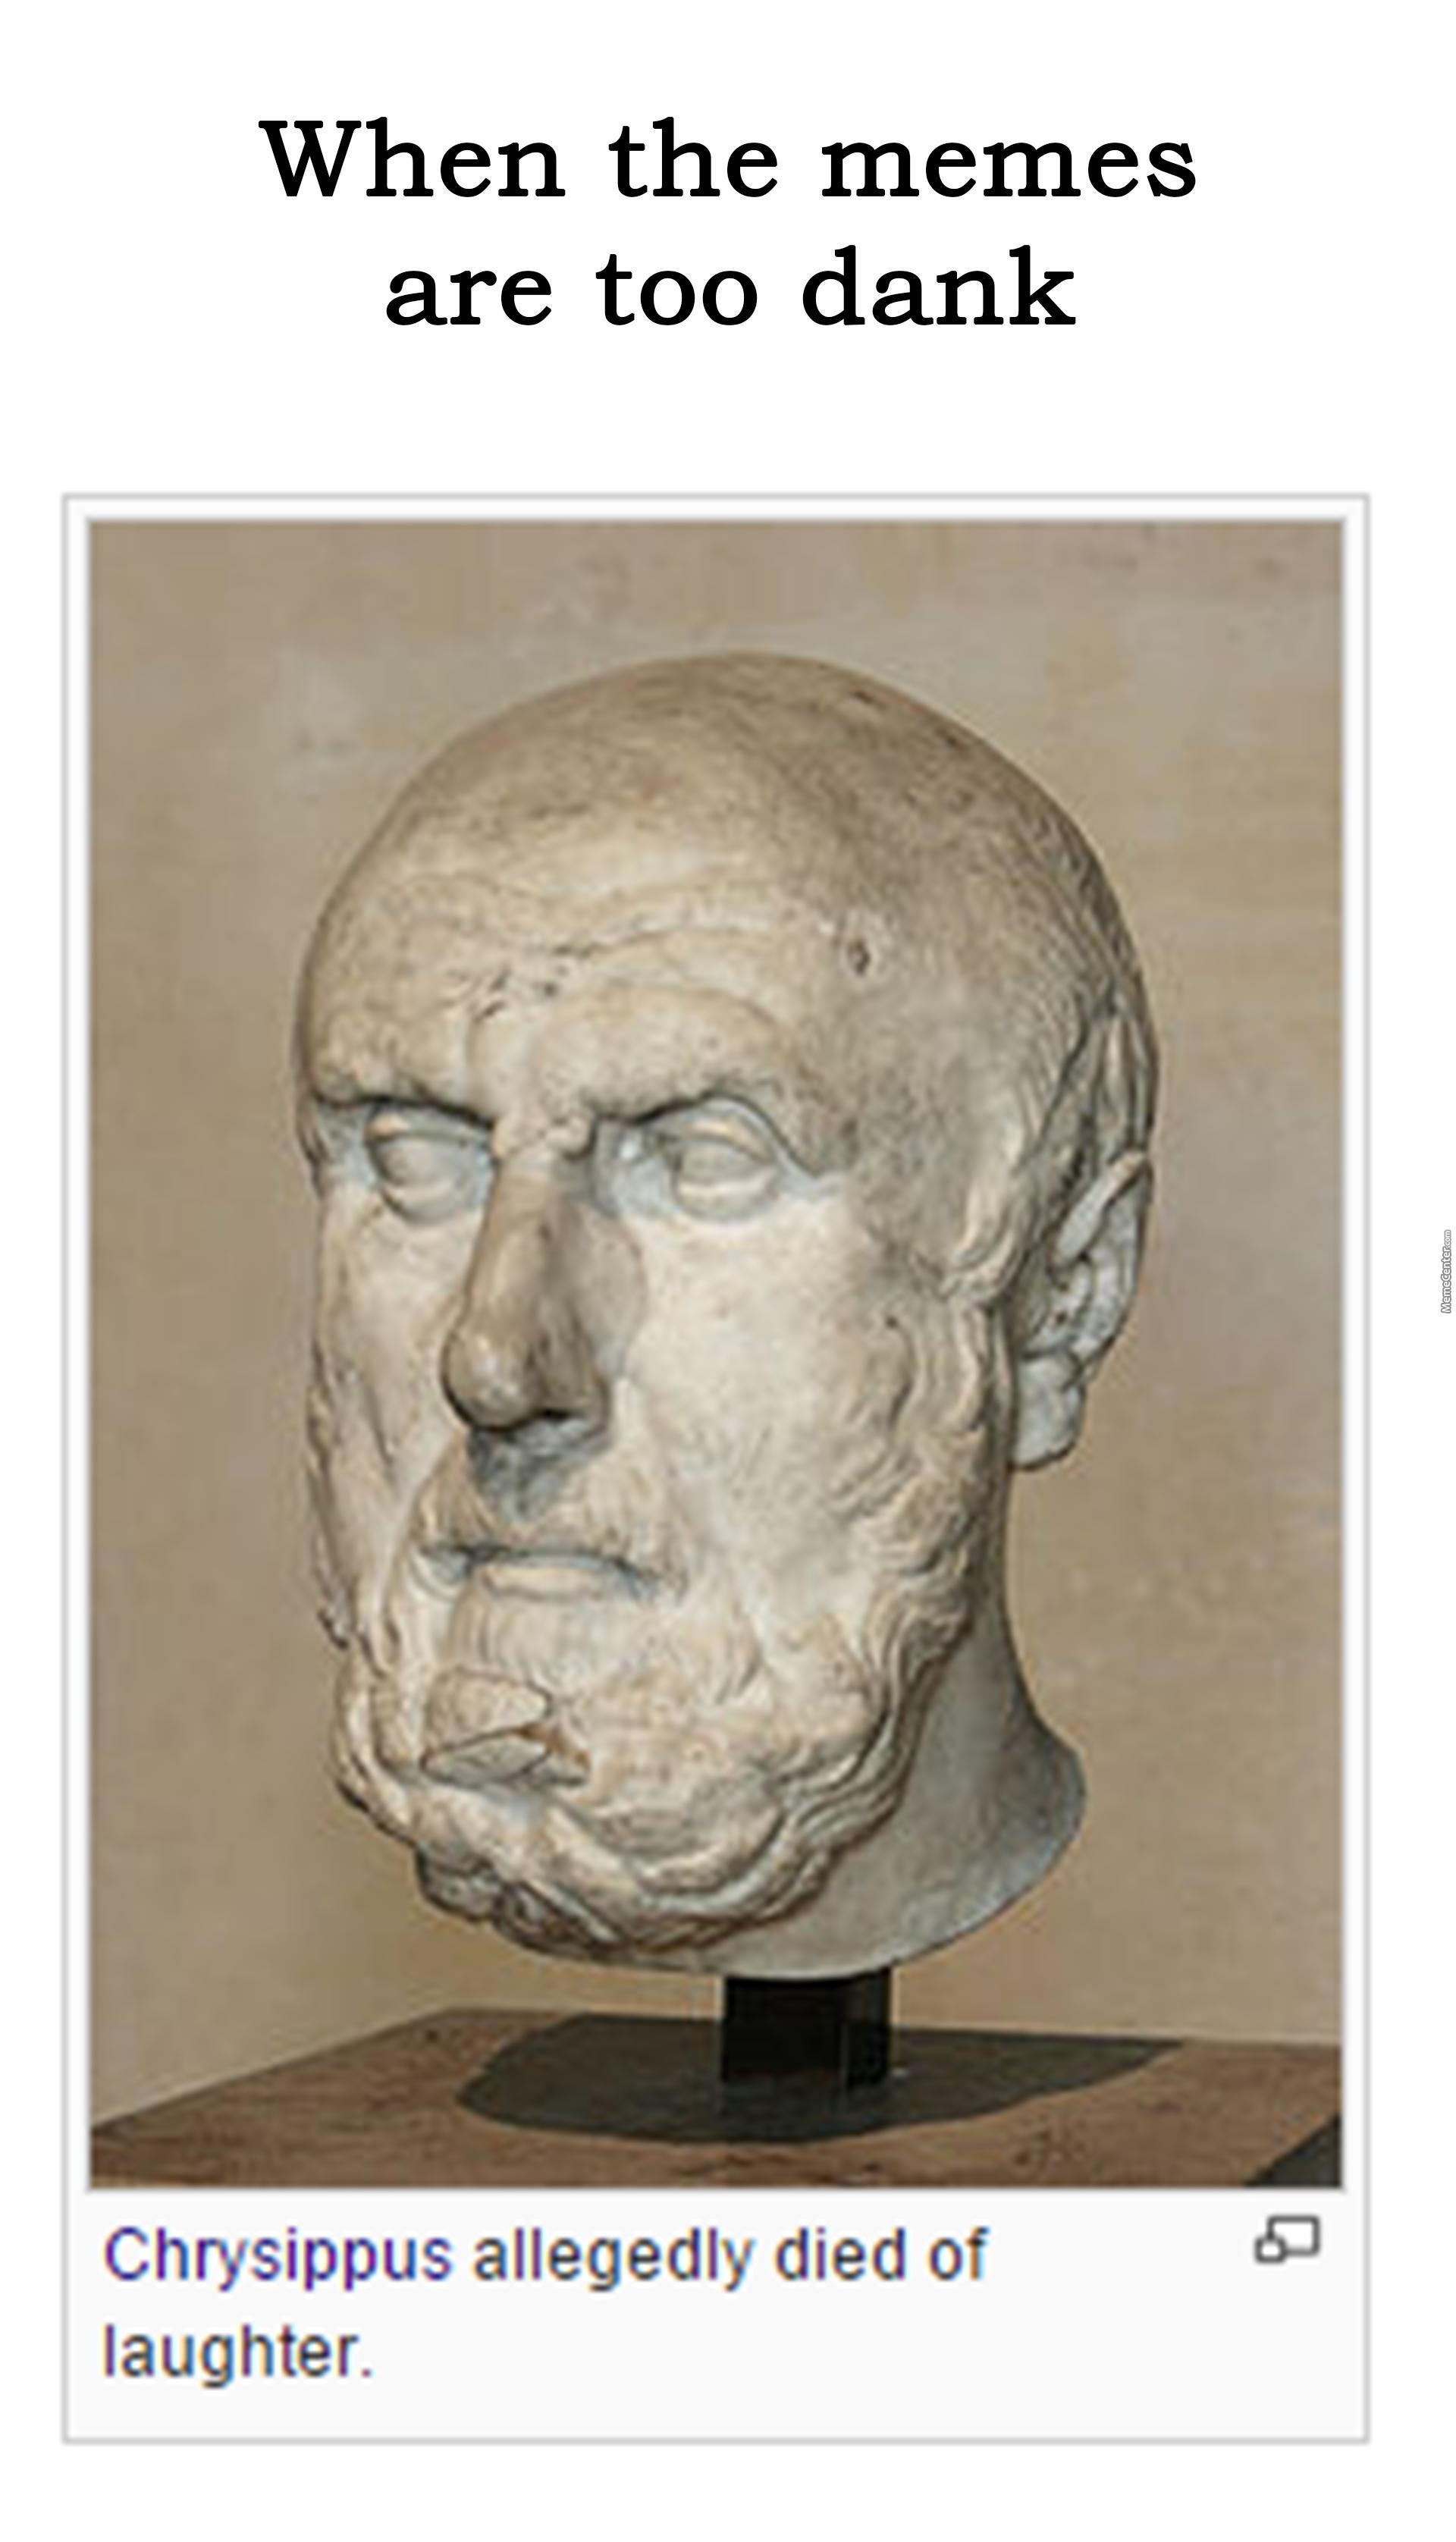 Chrysippus, The First Tumblr User